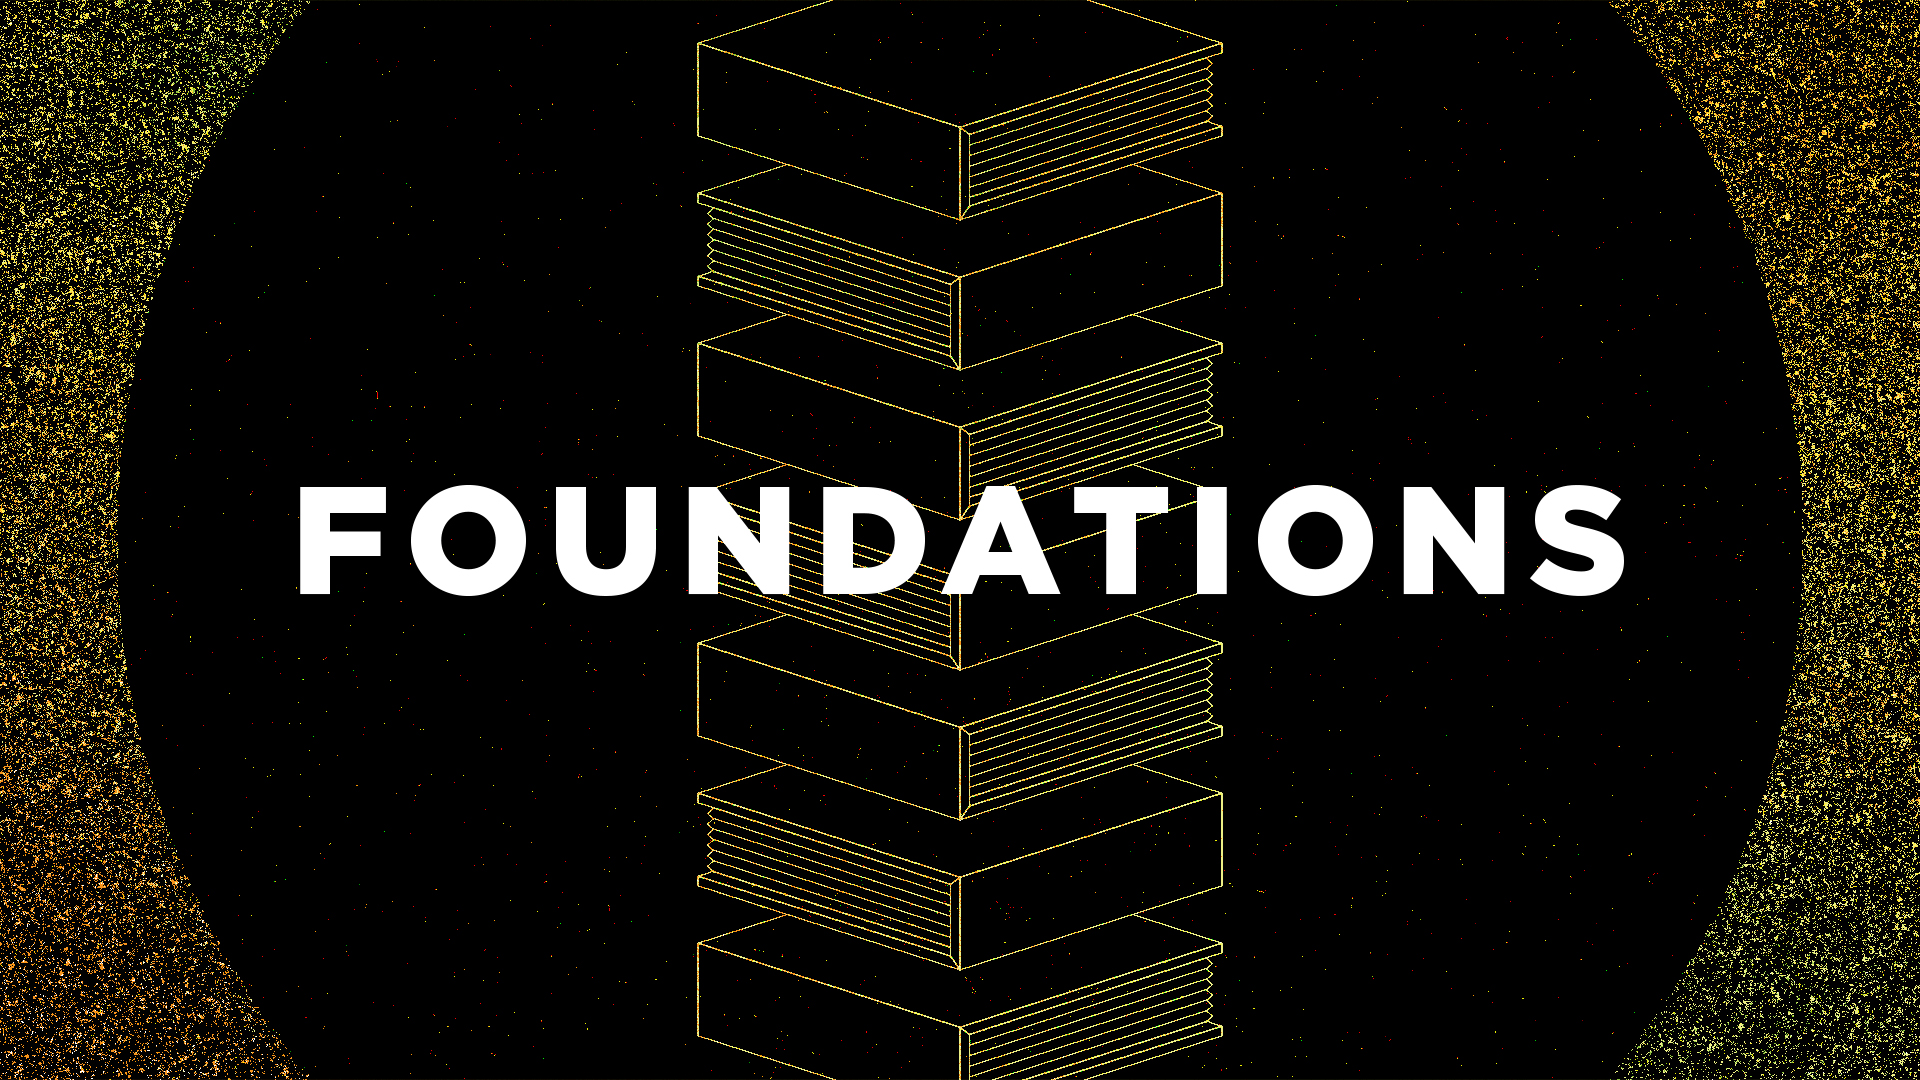 180 Foundations Series Graphic.jpg